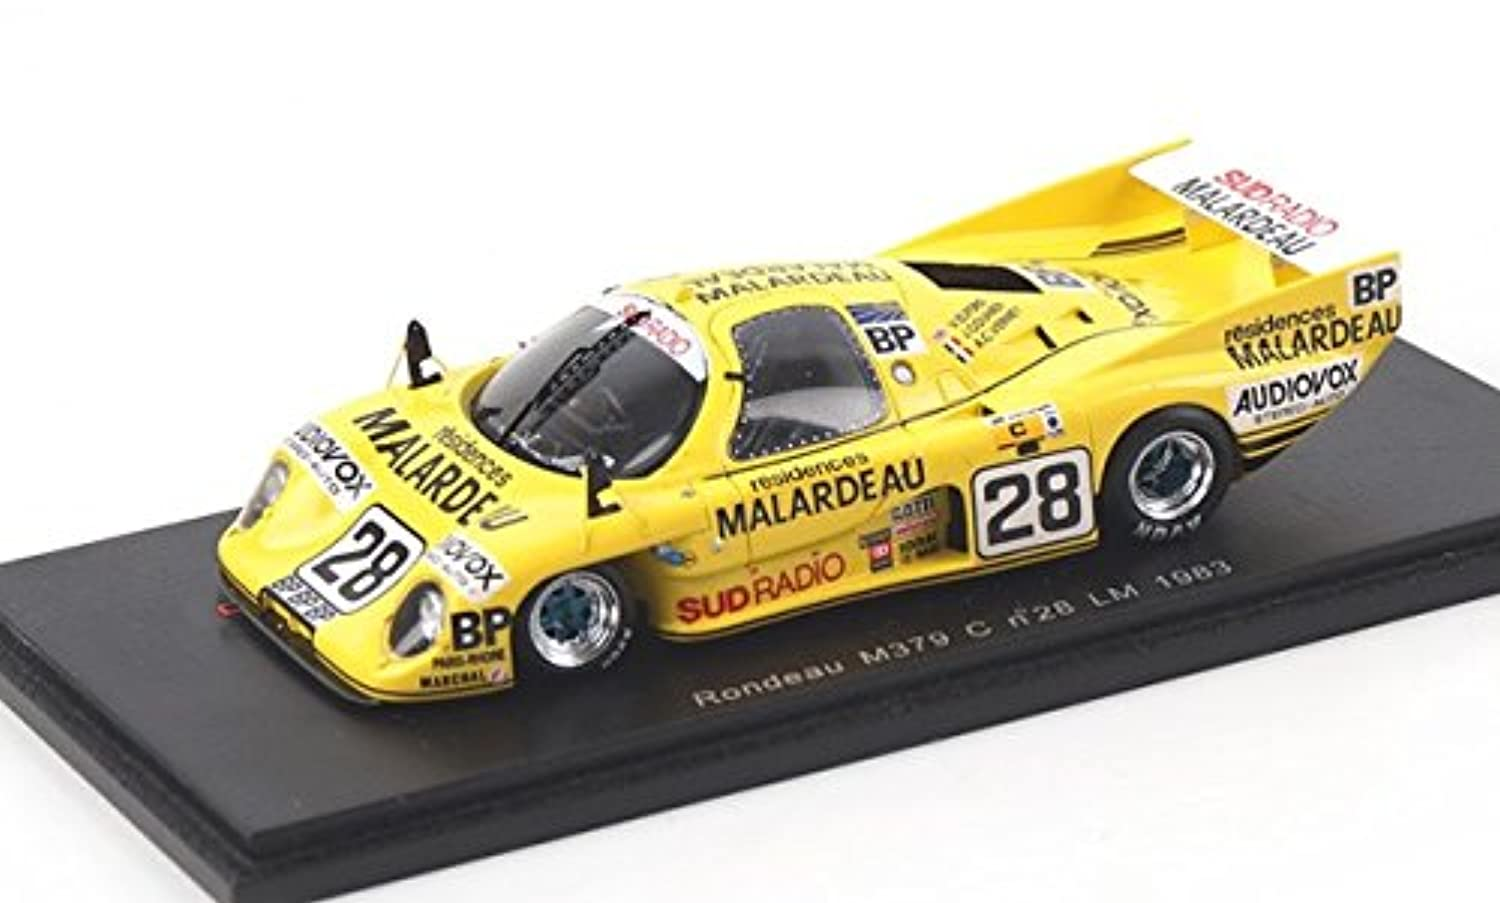 1983 Rondeau m379 C n.28 Le Mans V Elfordモデルカーin 1 : 43スケールby Spark